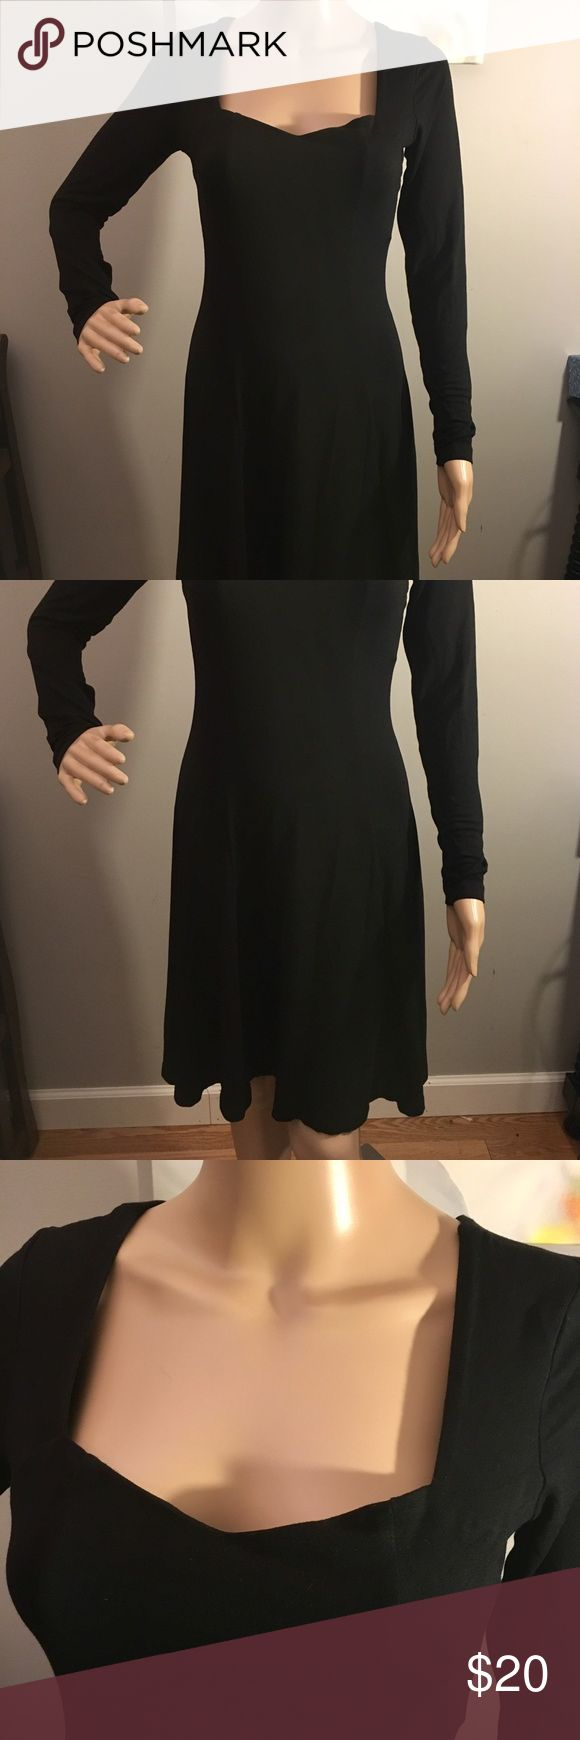 "ASOS jersey dress. Size 6L Comfy ASOS Jersey long sleeve dress.  Black.  95% viscose 5% elastic.  Size 6L  No rips or stains.  Measures 16"" pit to pit.  Sleeves are 24"" from shoulder.  Length is 36"" from shoulder.  Check out my other listings to bundle and save 🎉 ASOS Dresses"